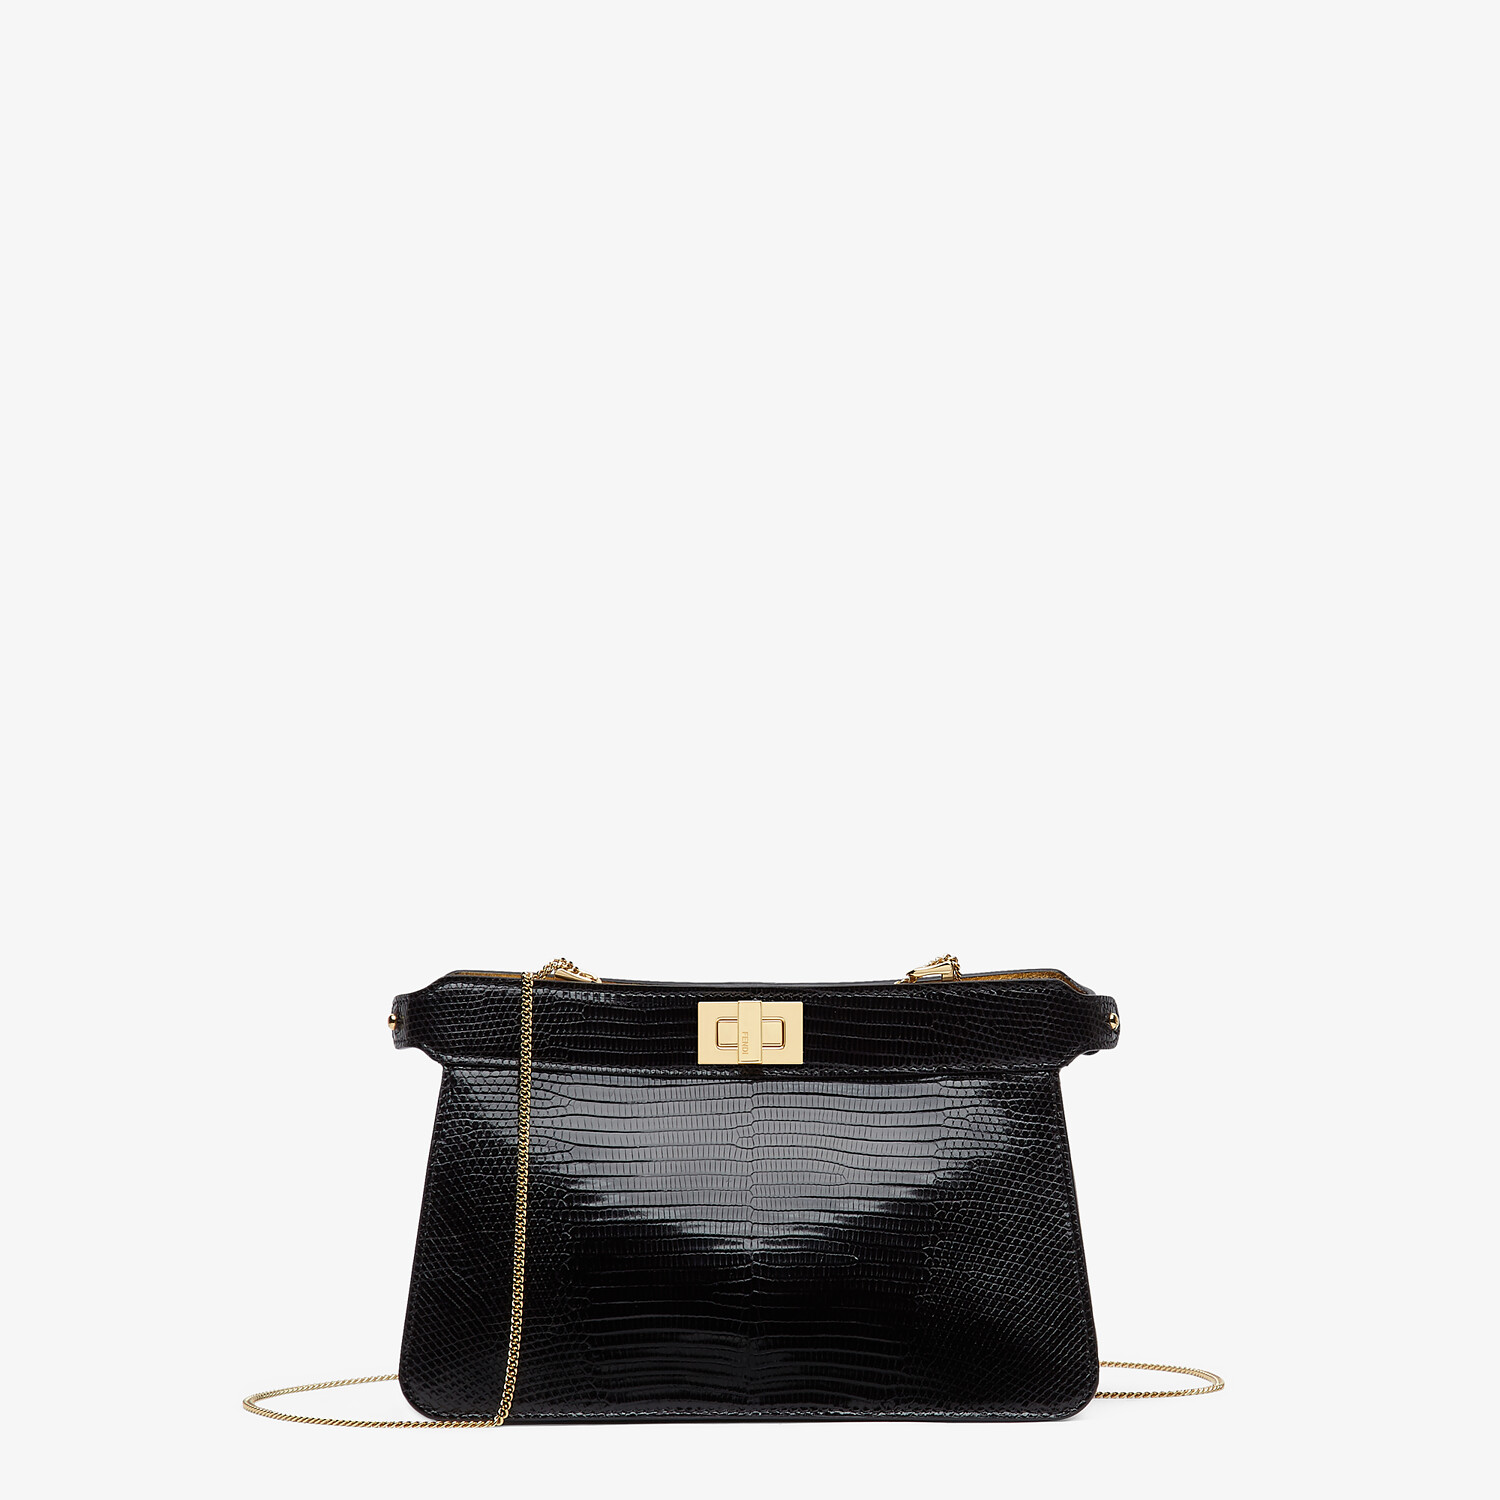 FENDI PEEKABOO ISEEU POCHETTE - Black lizard leather bag - view 1 detail